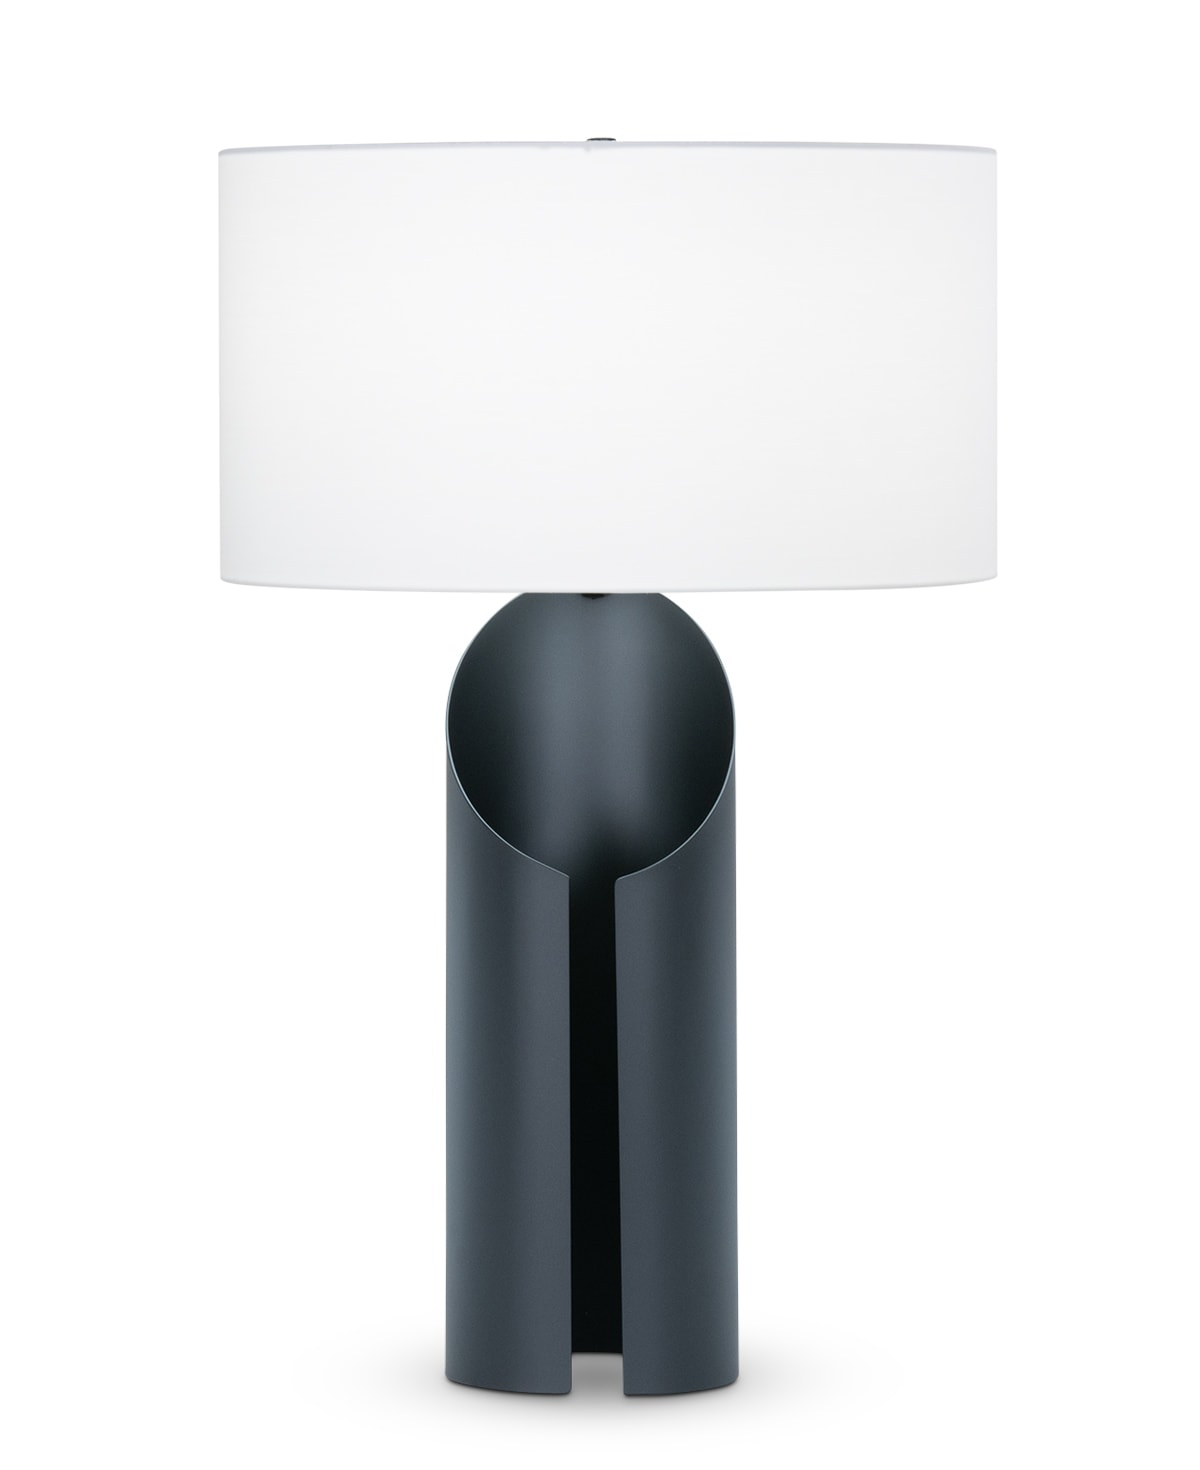 FlowDecor Jade Table Lamp in metal with black matte finish and off-white cotton oval shade (# 4483)